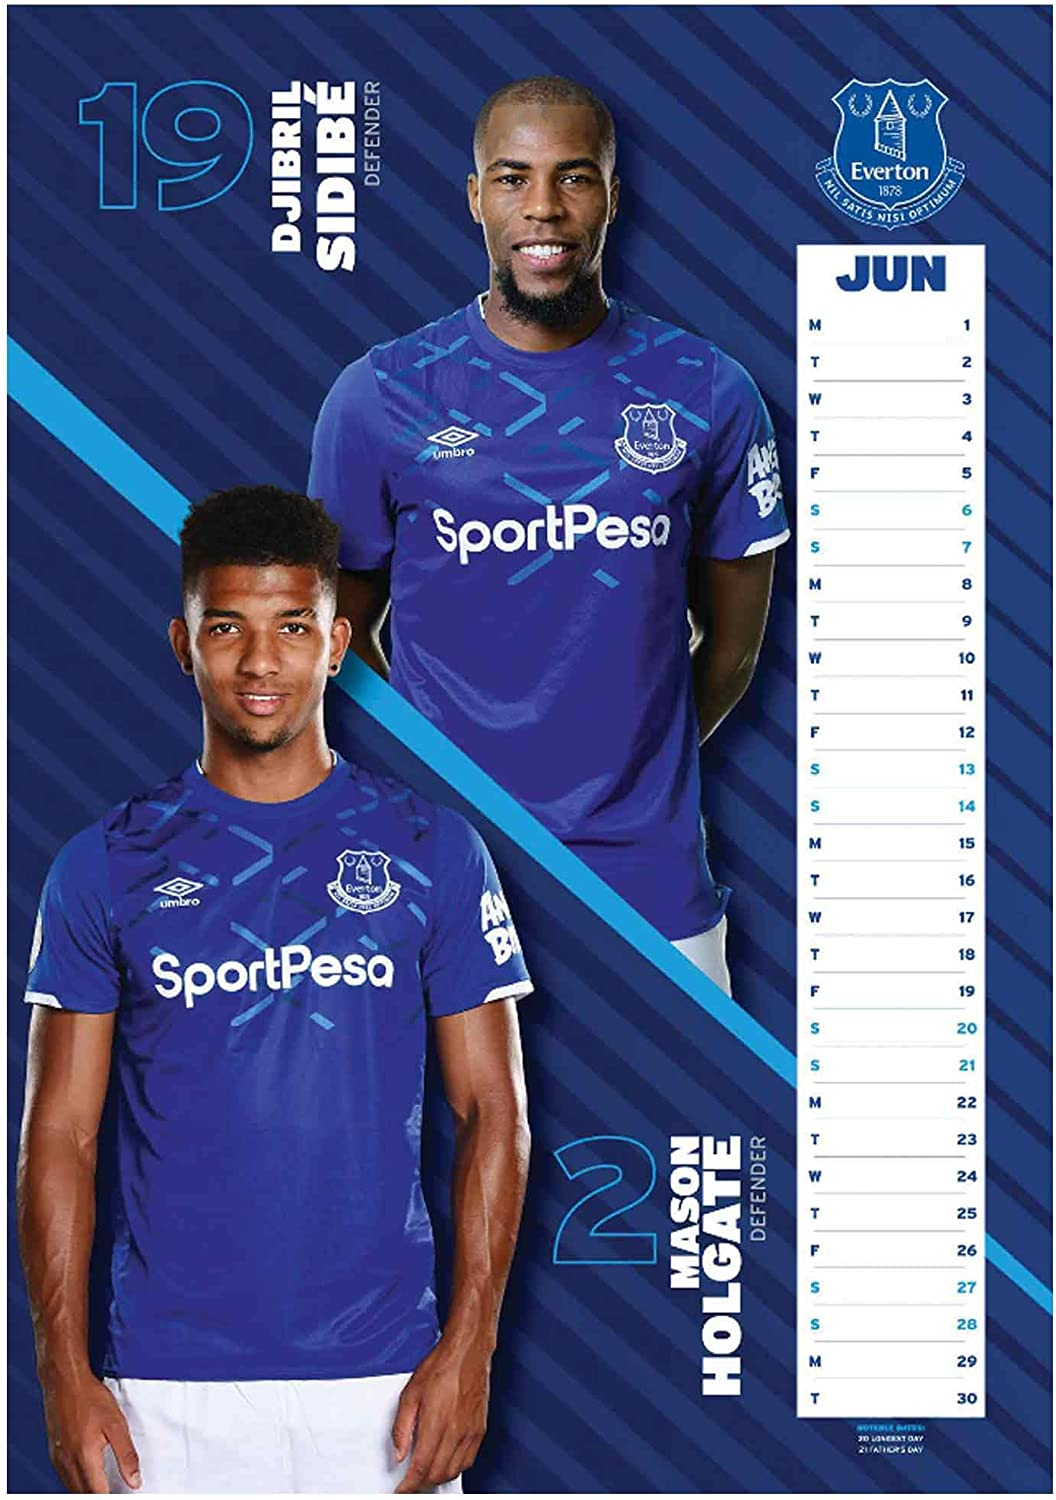 Official Everton FC 2020 Football Calendar A3